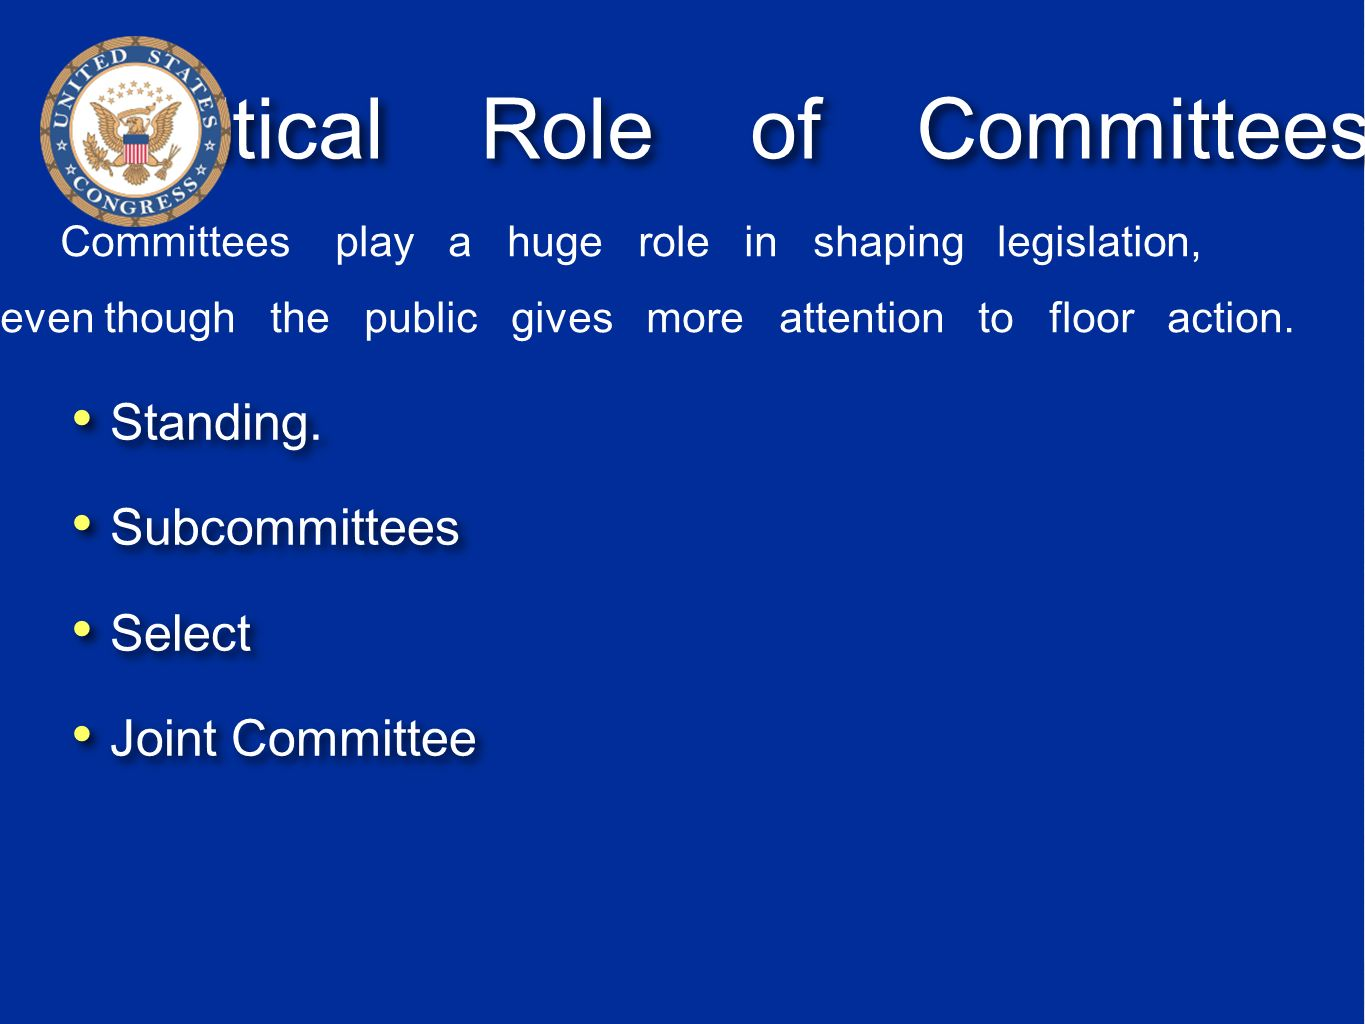 Critical Role of Committees Standing. Subcommittees Select Joint Committee Standing. Subcommittees Select Joint Committee Committees play a huge role